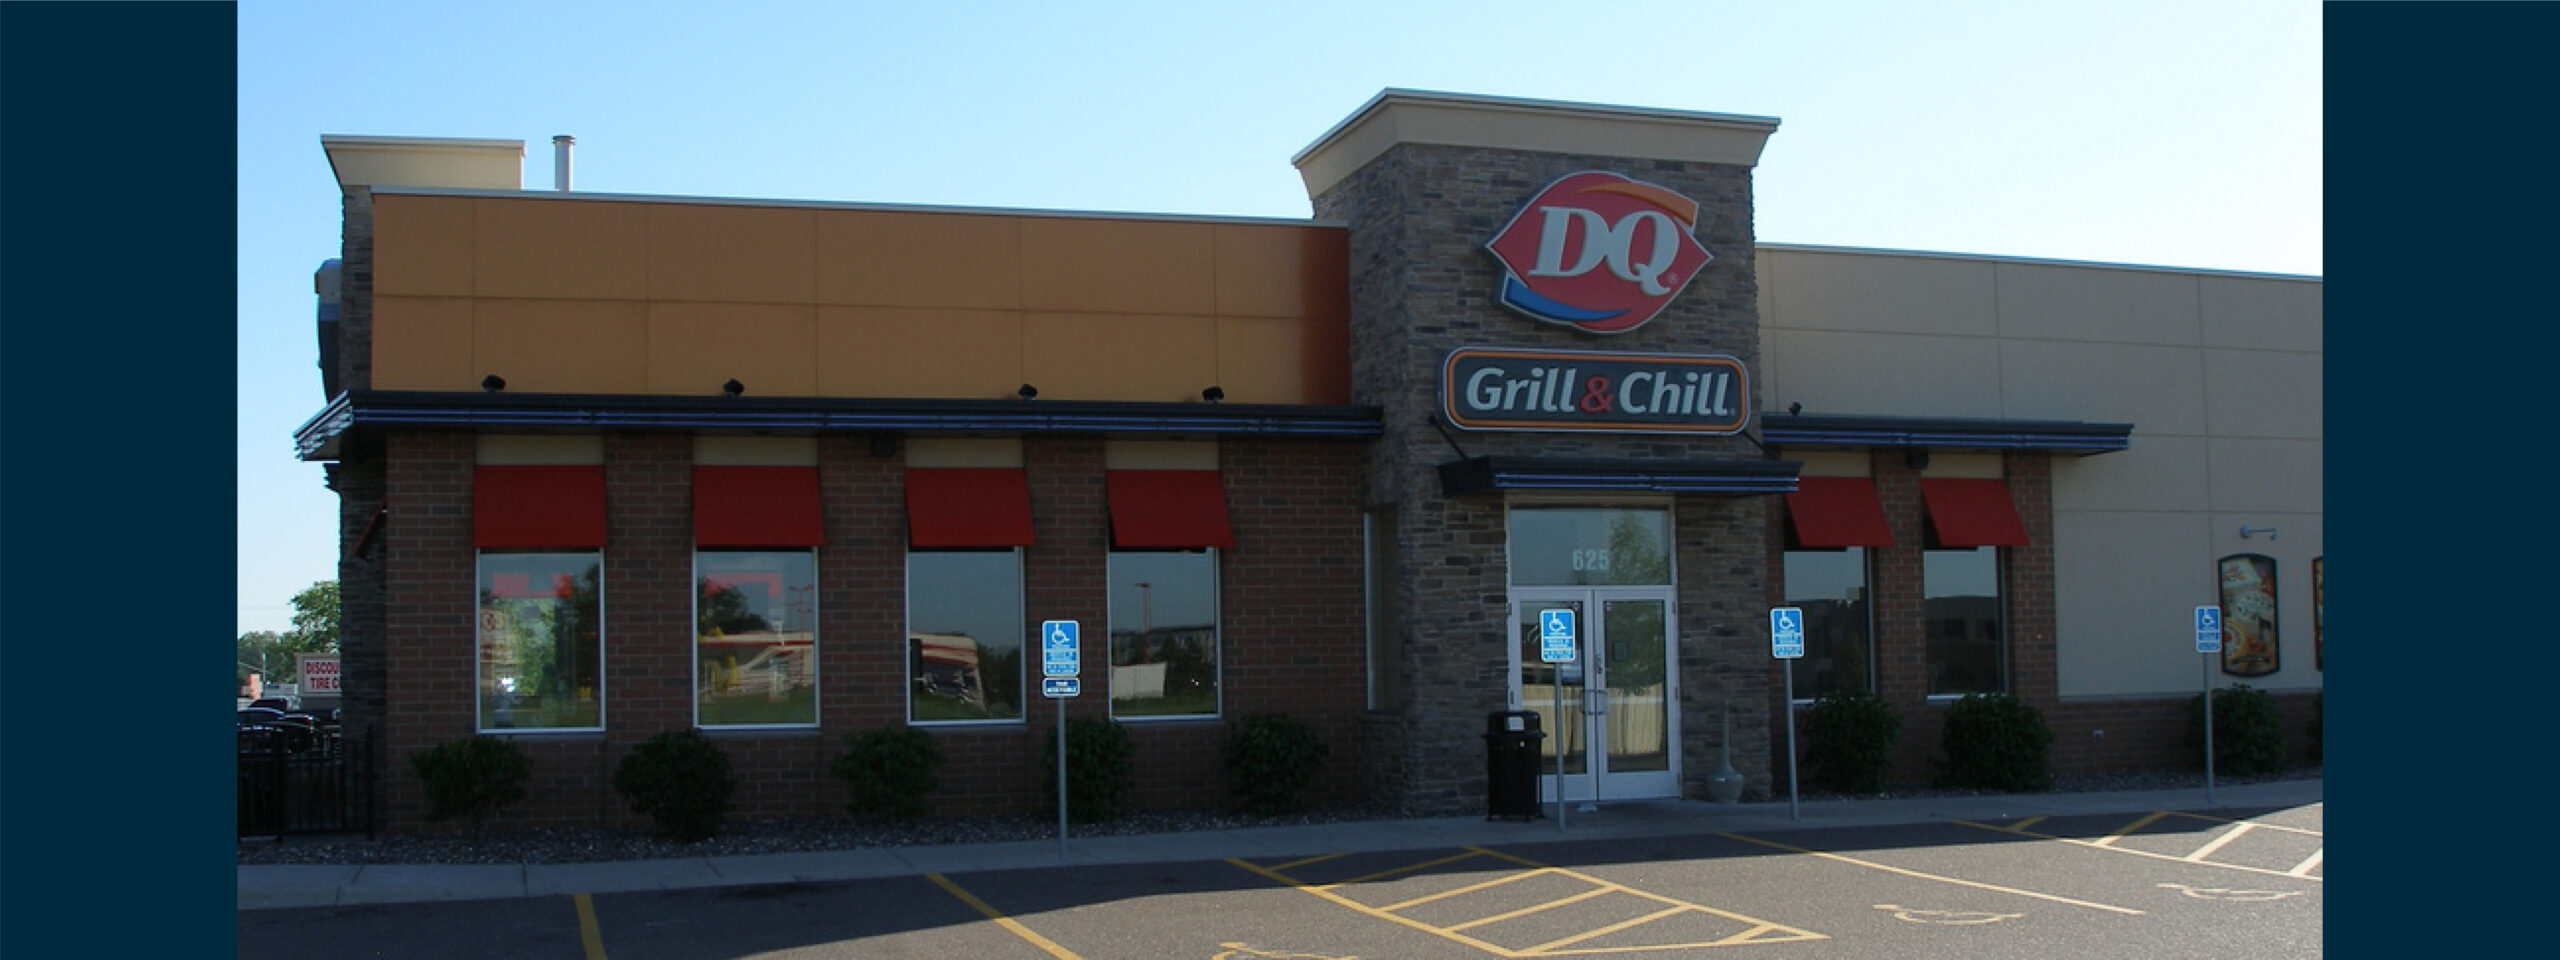 Lino Lakes, MN Fourteen Foods DQ Restaurant